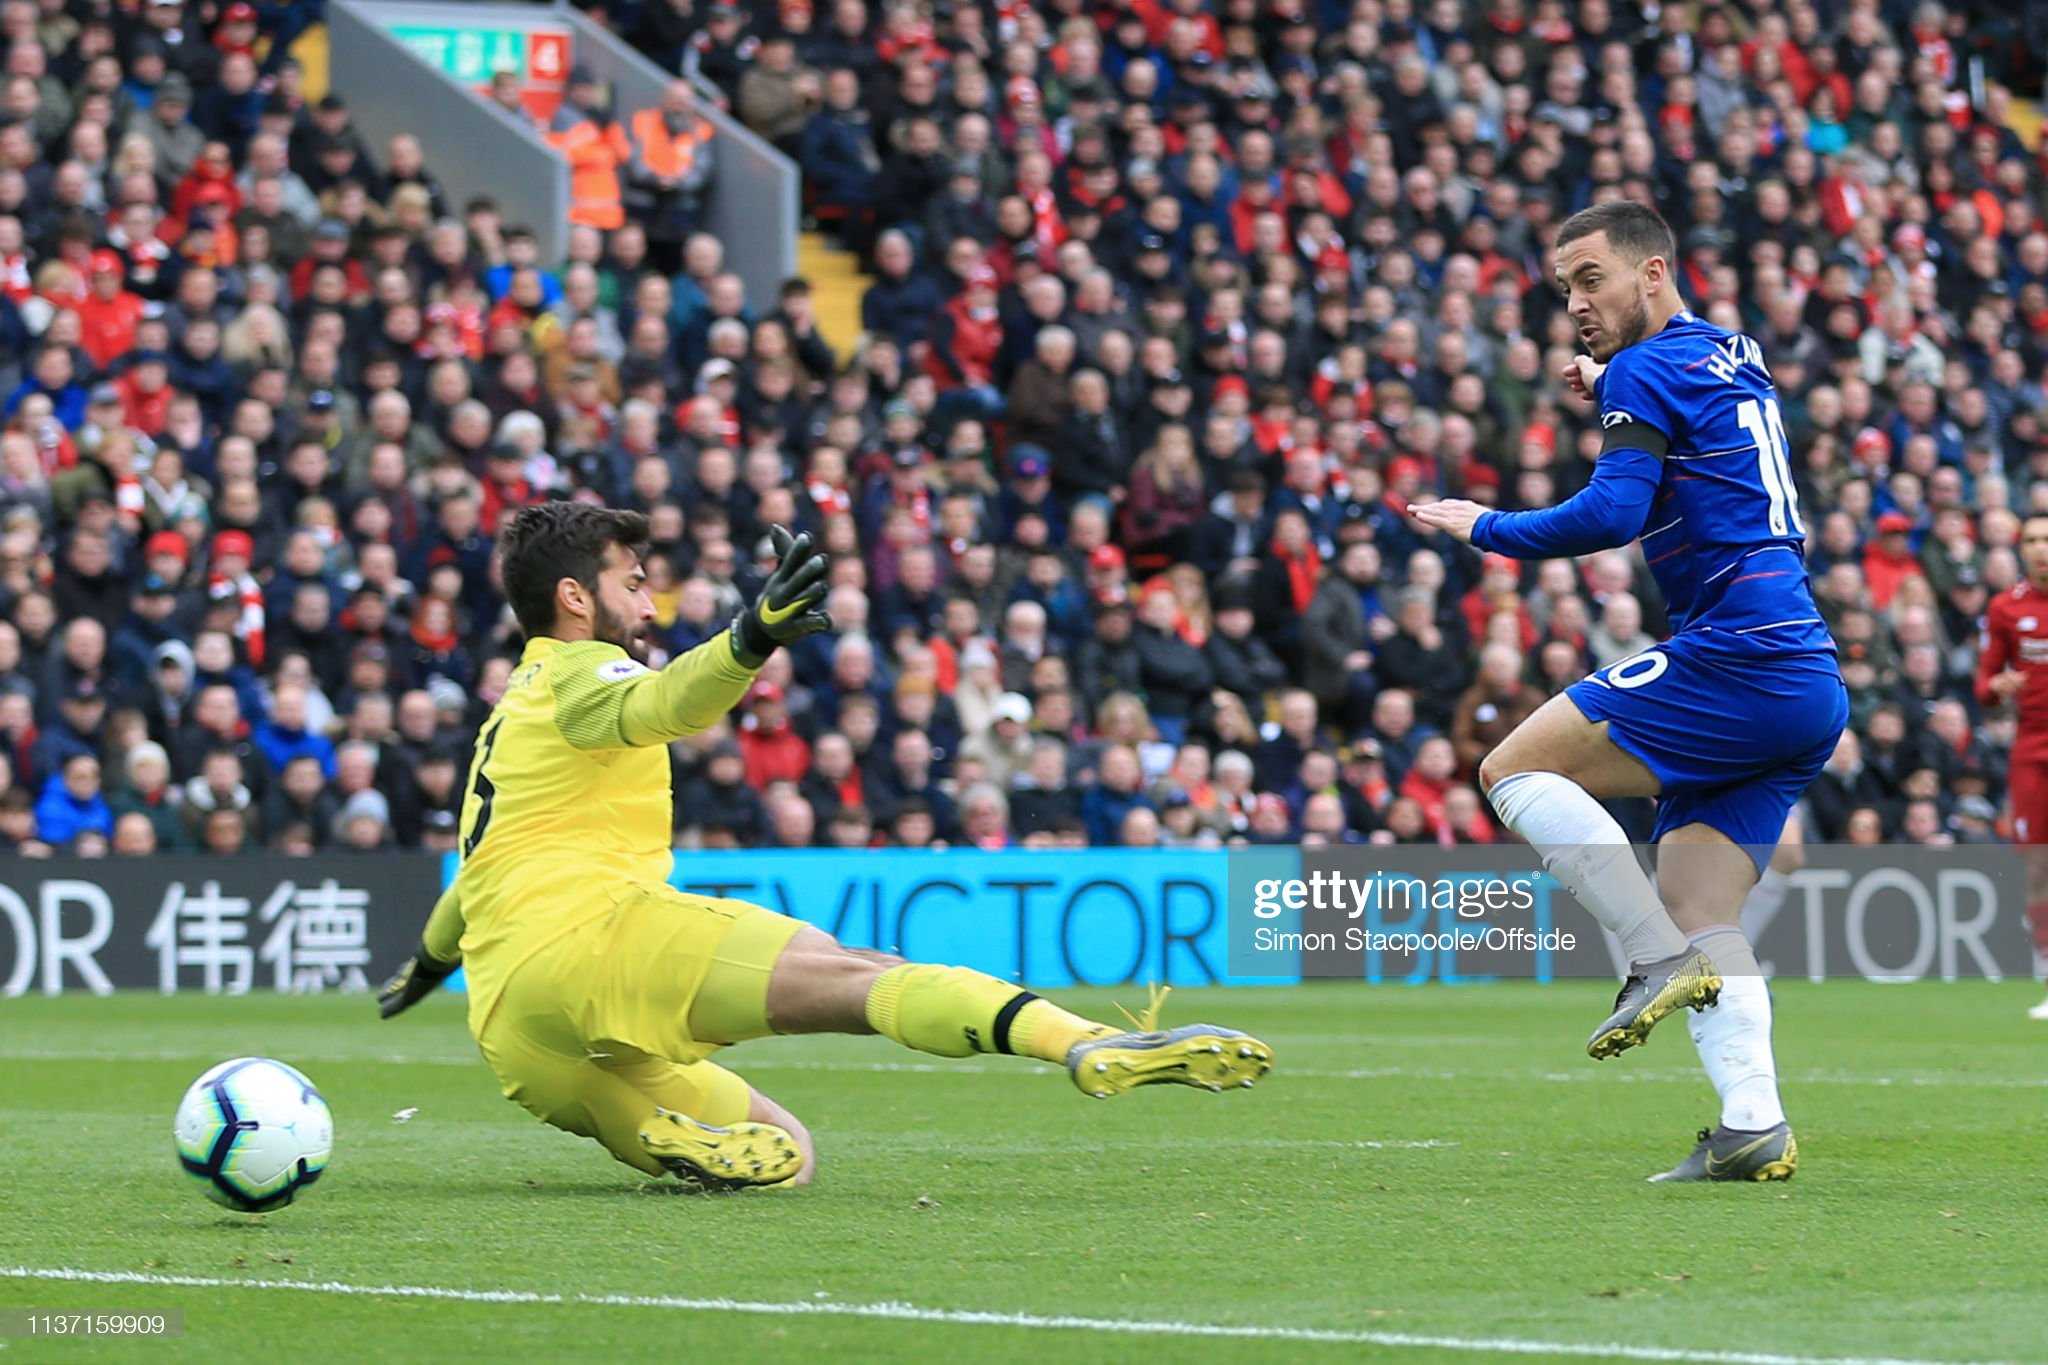 https://media.gettyimages.com/photos/eden-hazard-of-chelsea-shoots-past-liverpool-goalkeeper-alisson-but-picture-id1137159909?s=2048x2048